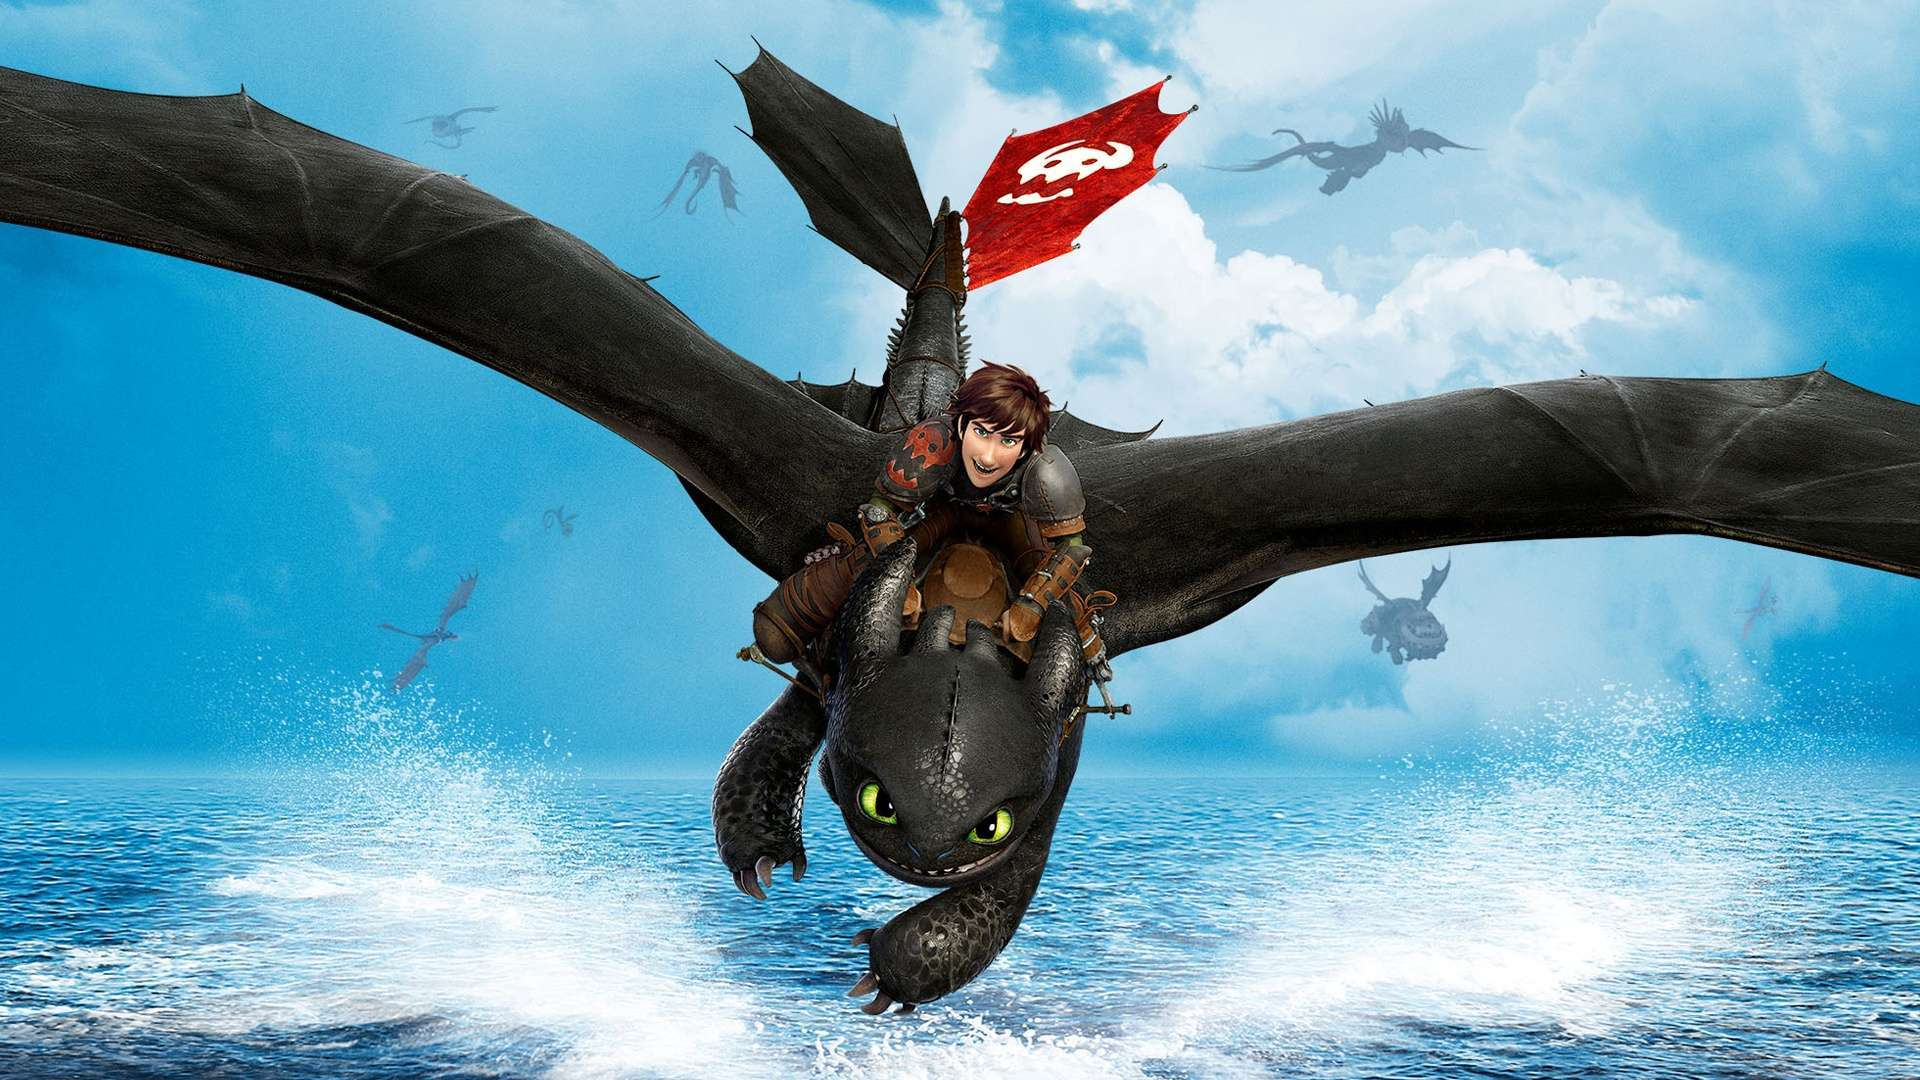 Wallpaper Hd Wallpaper 2014 How To Train Your Dragon 2 1080p Upload 1920x1080